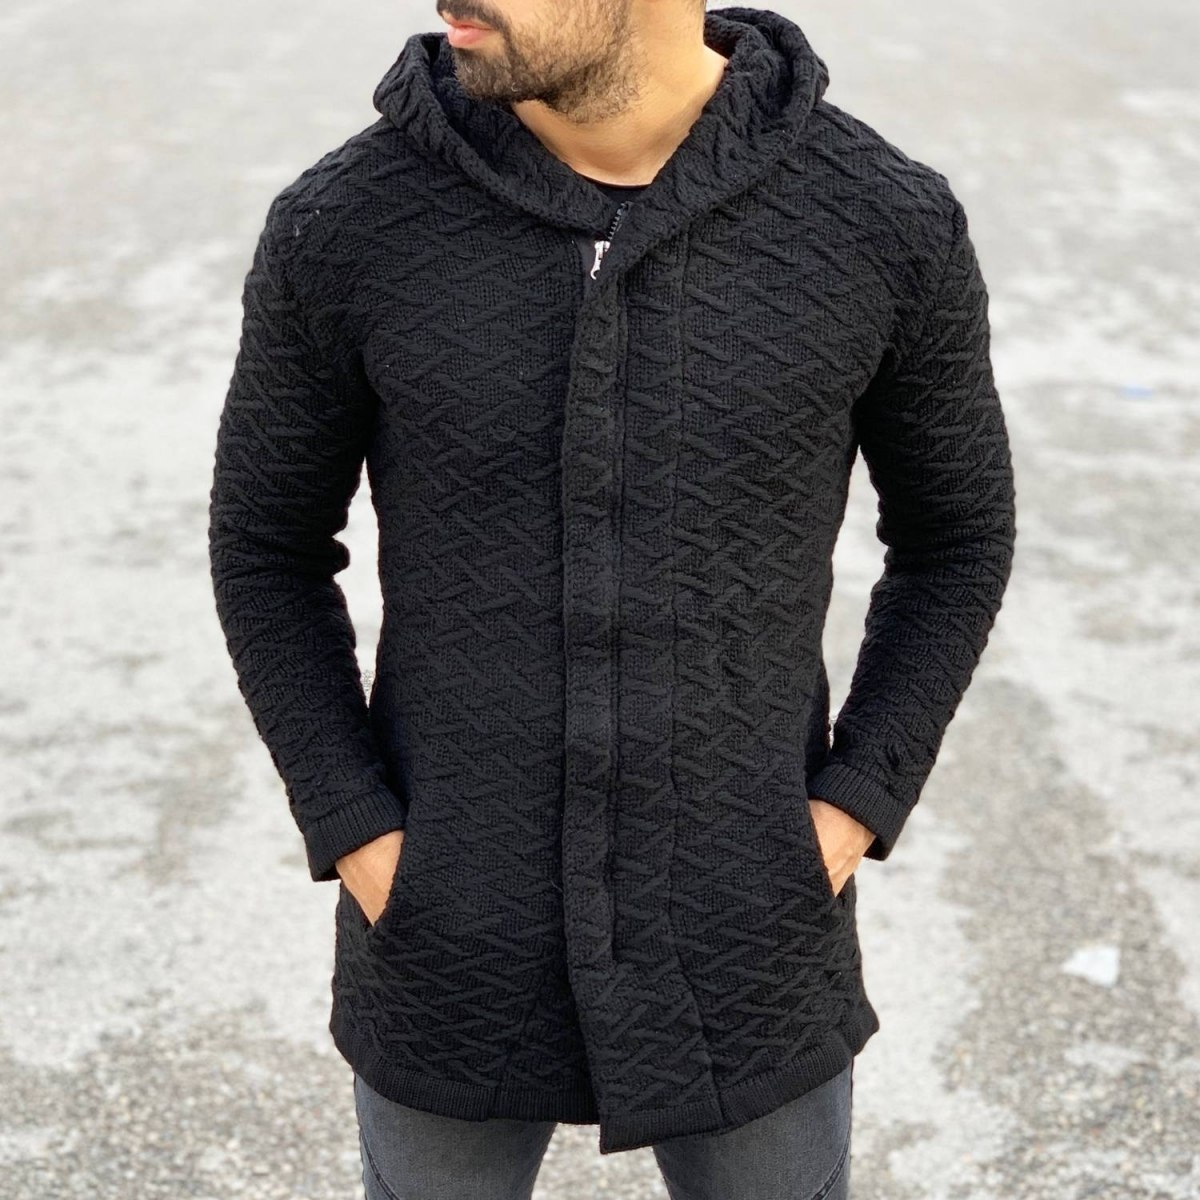 Ring Pattern Hooded Cardigan in Black